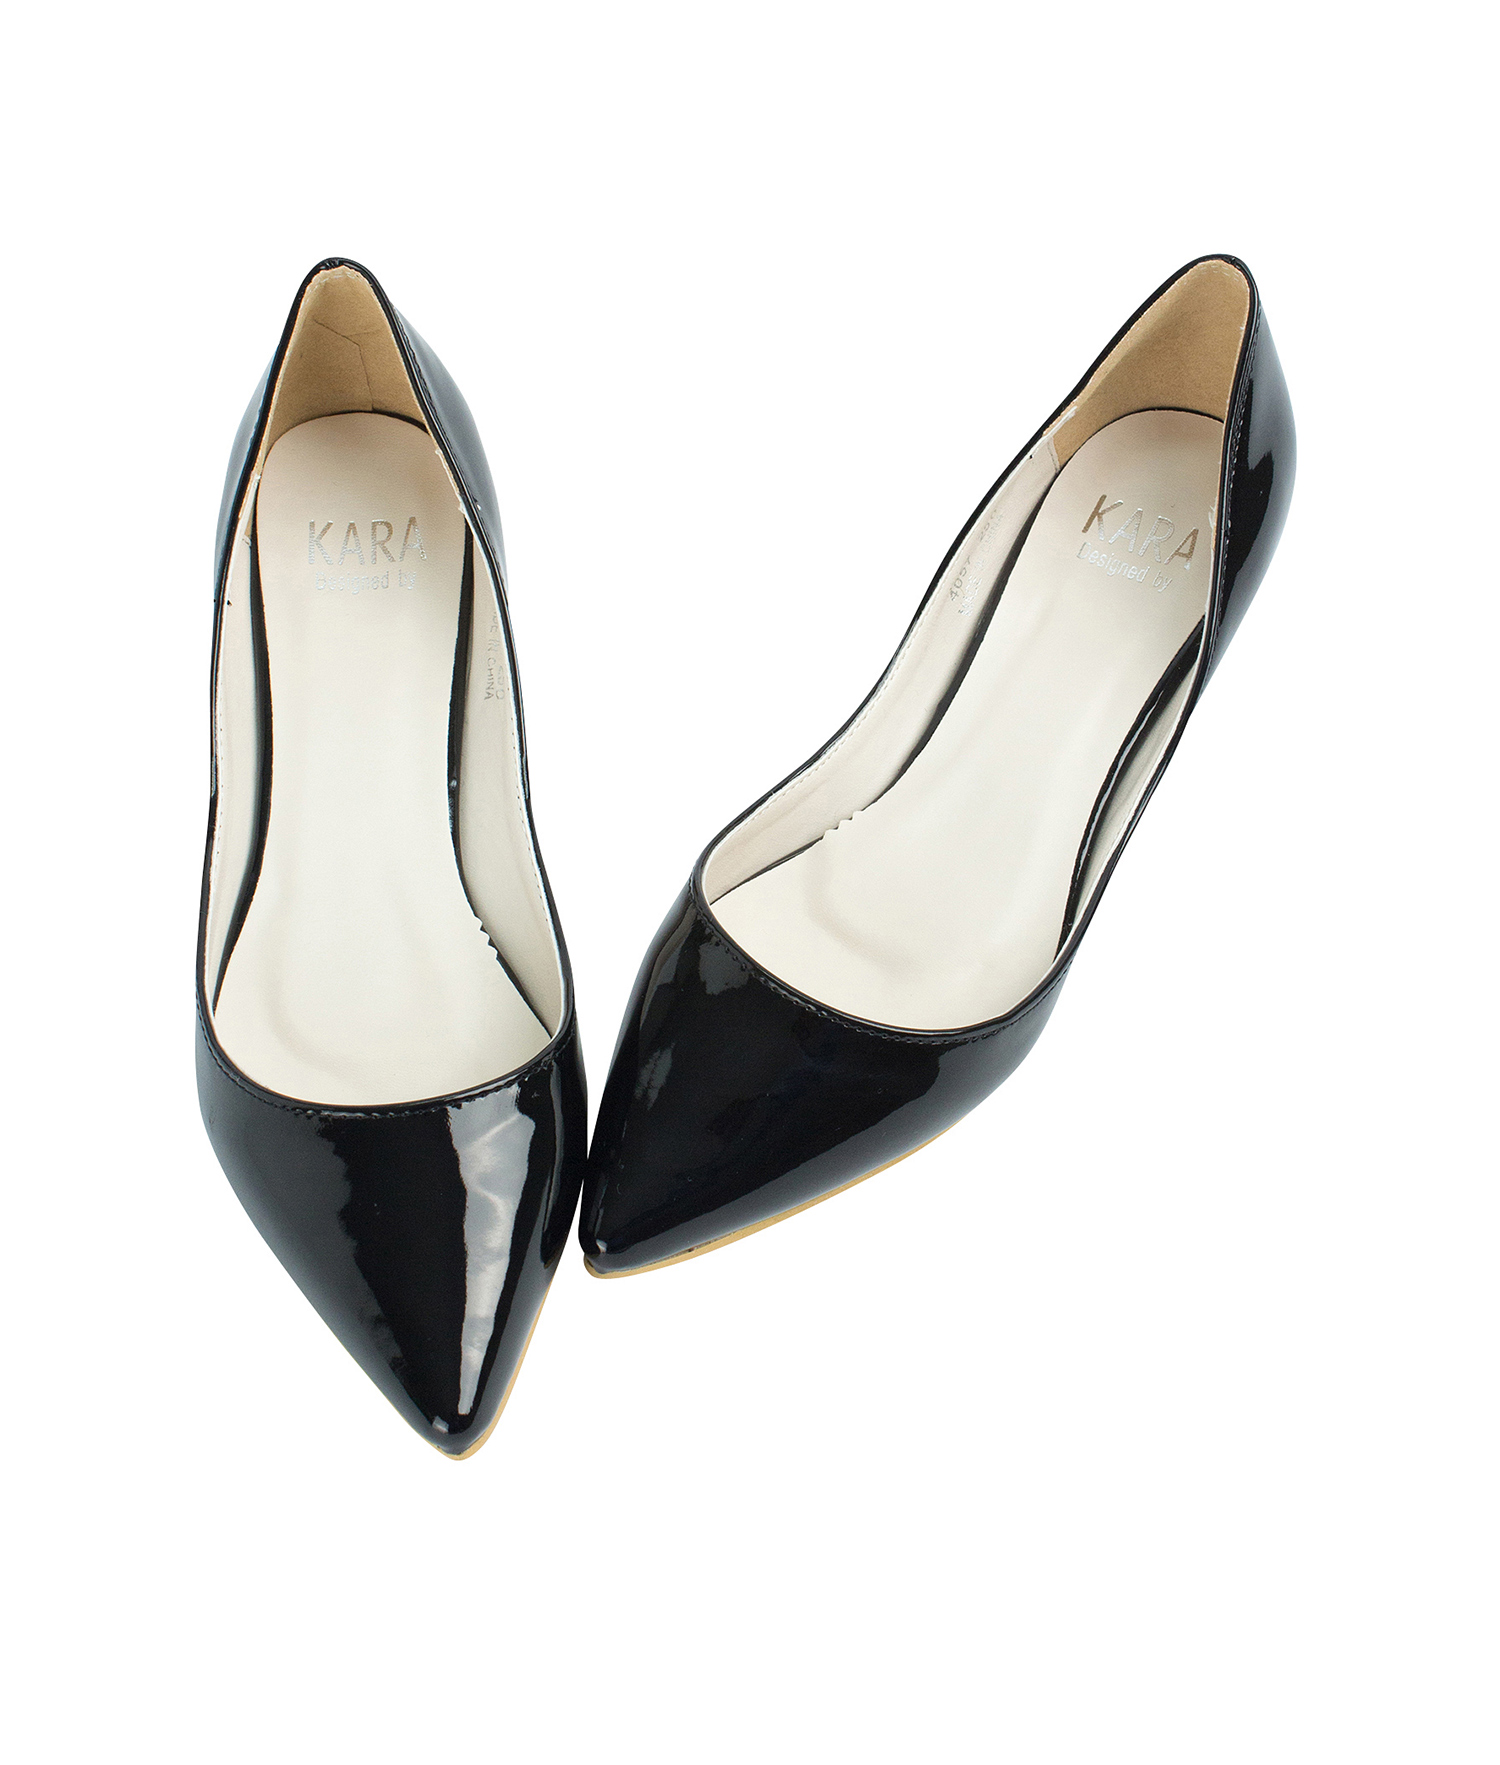 preowned wedding shoes photo - 1